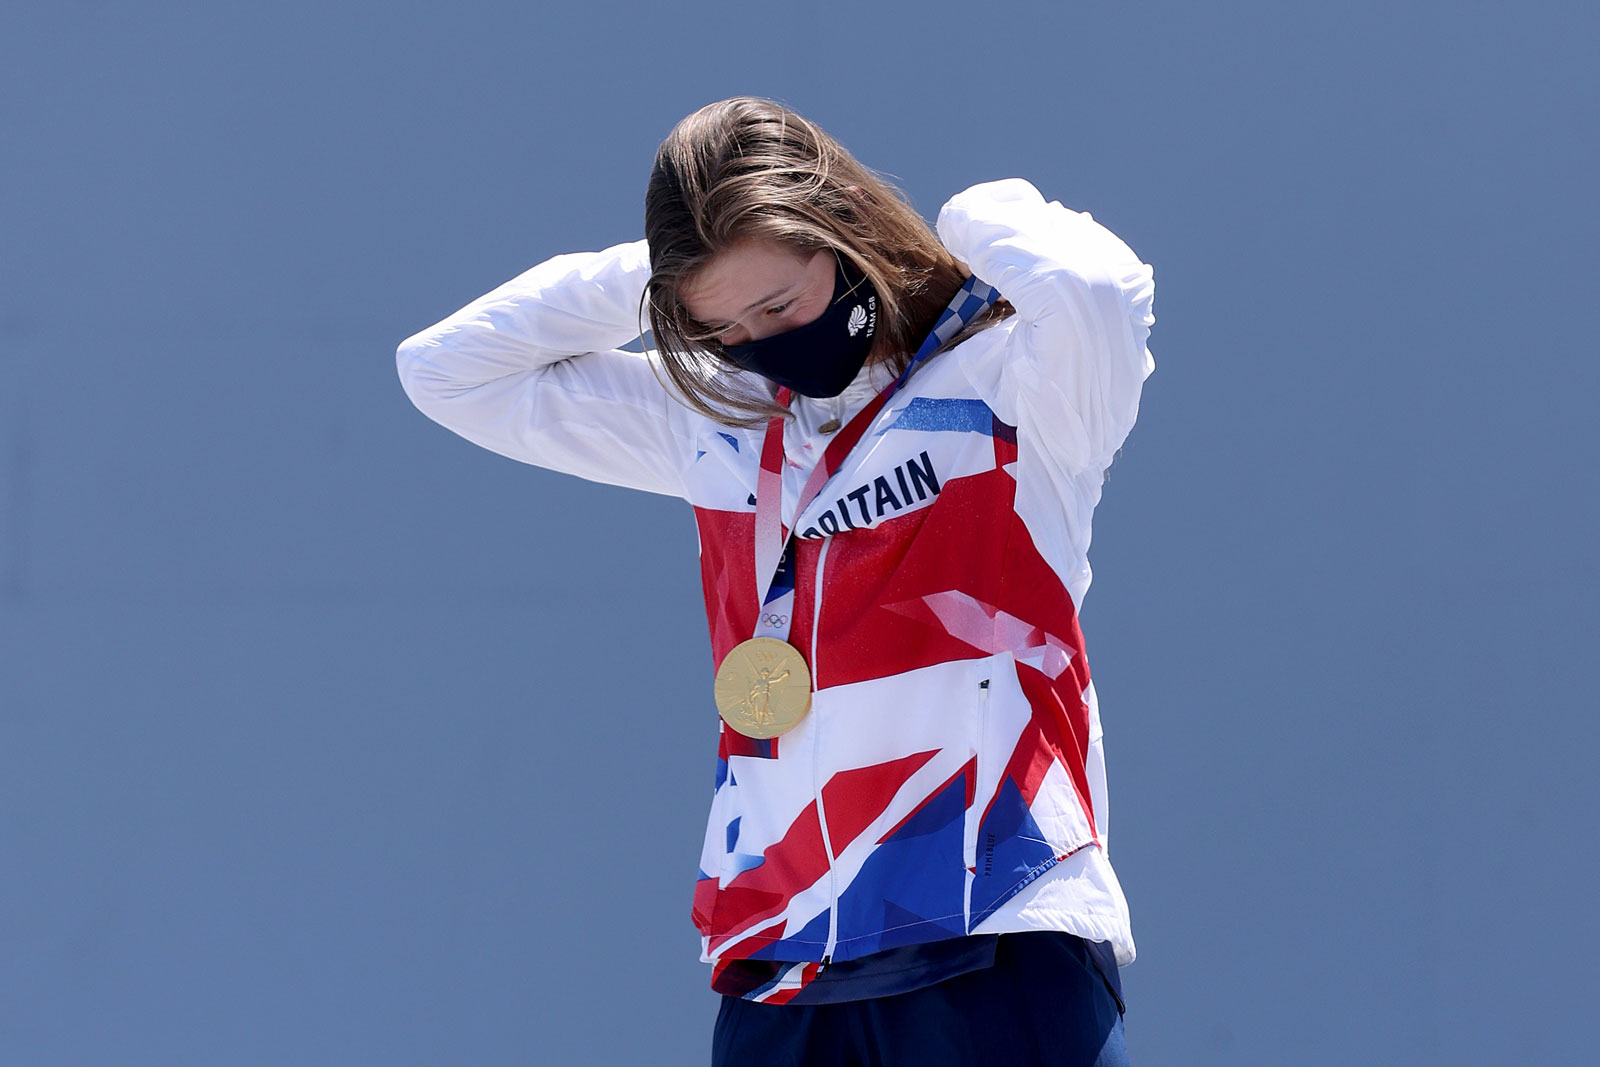 Worthington accepts her gold medal.